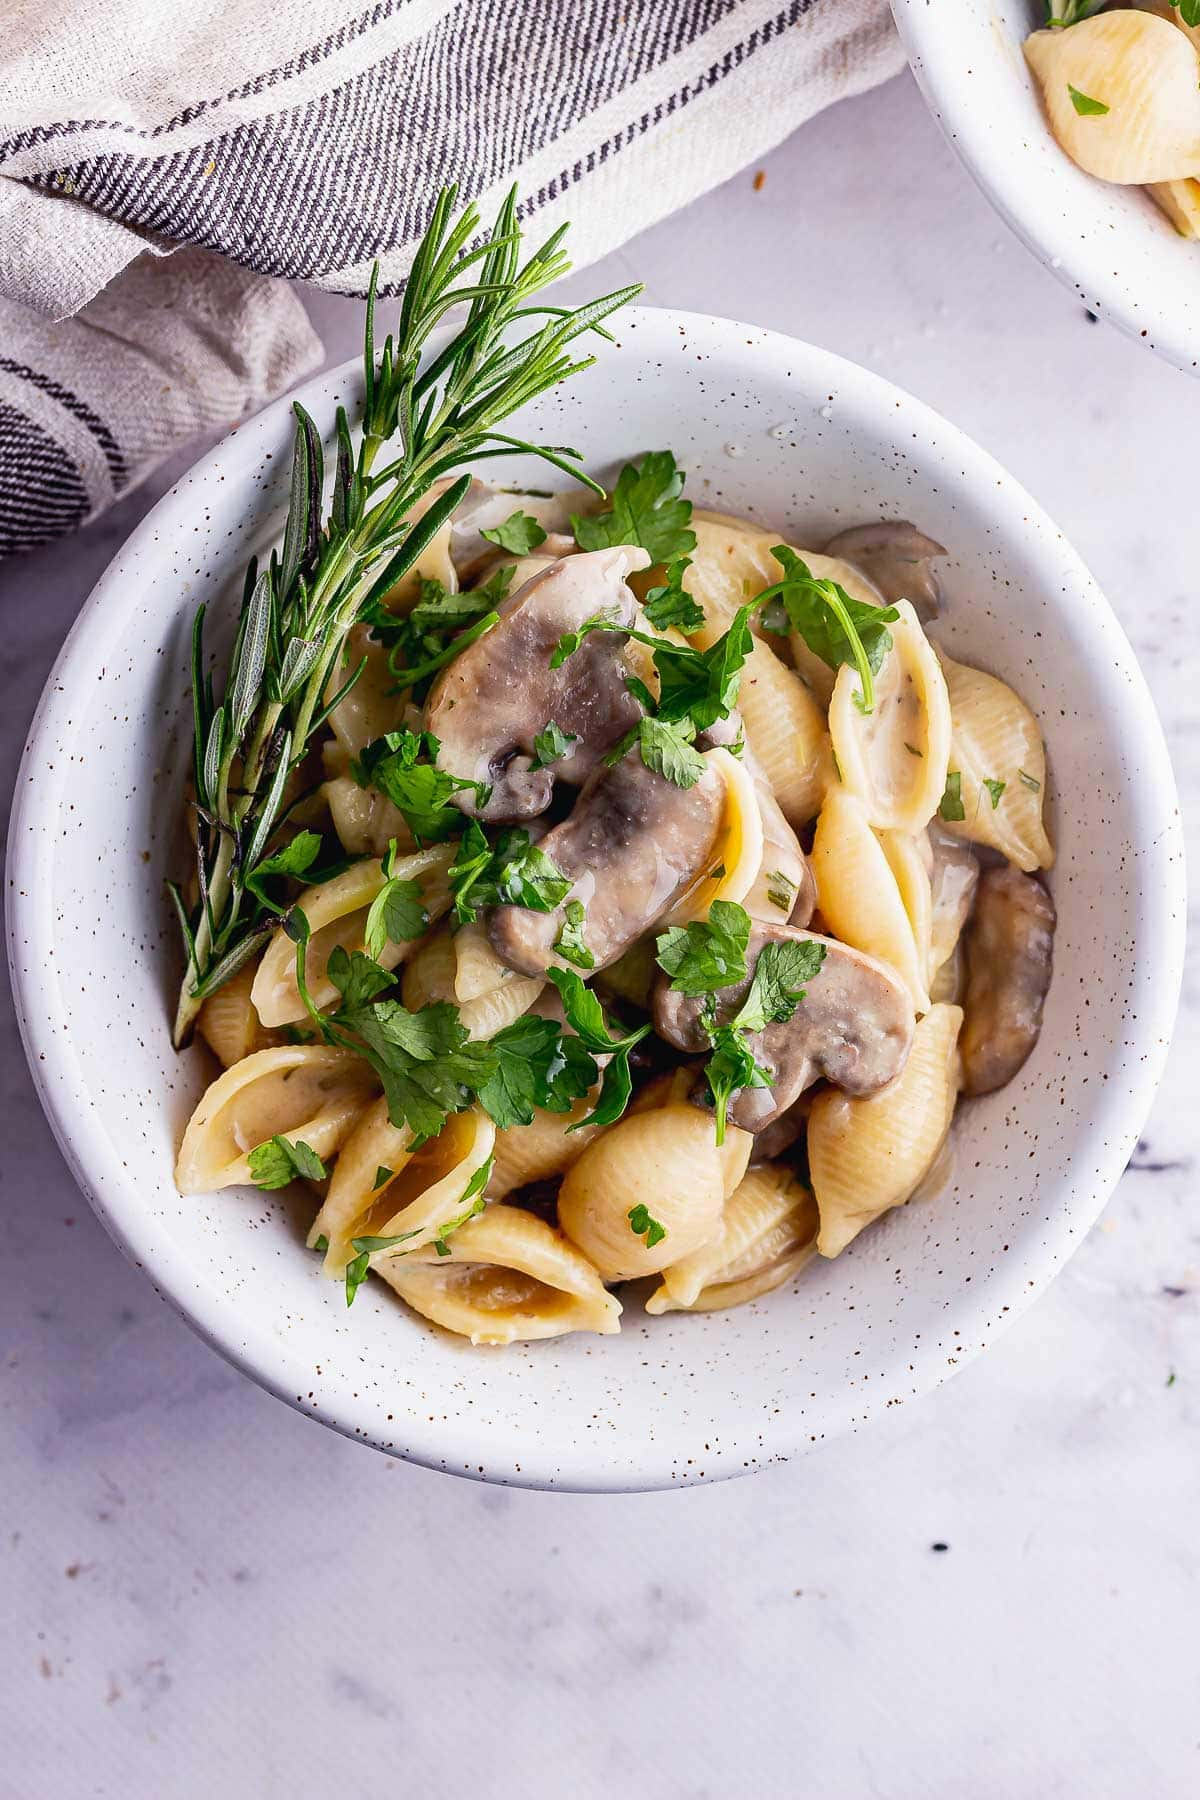 Overhead shot of creamy pasta and mushrooms with herbs